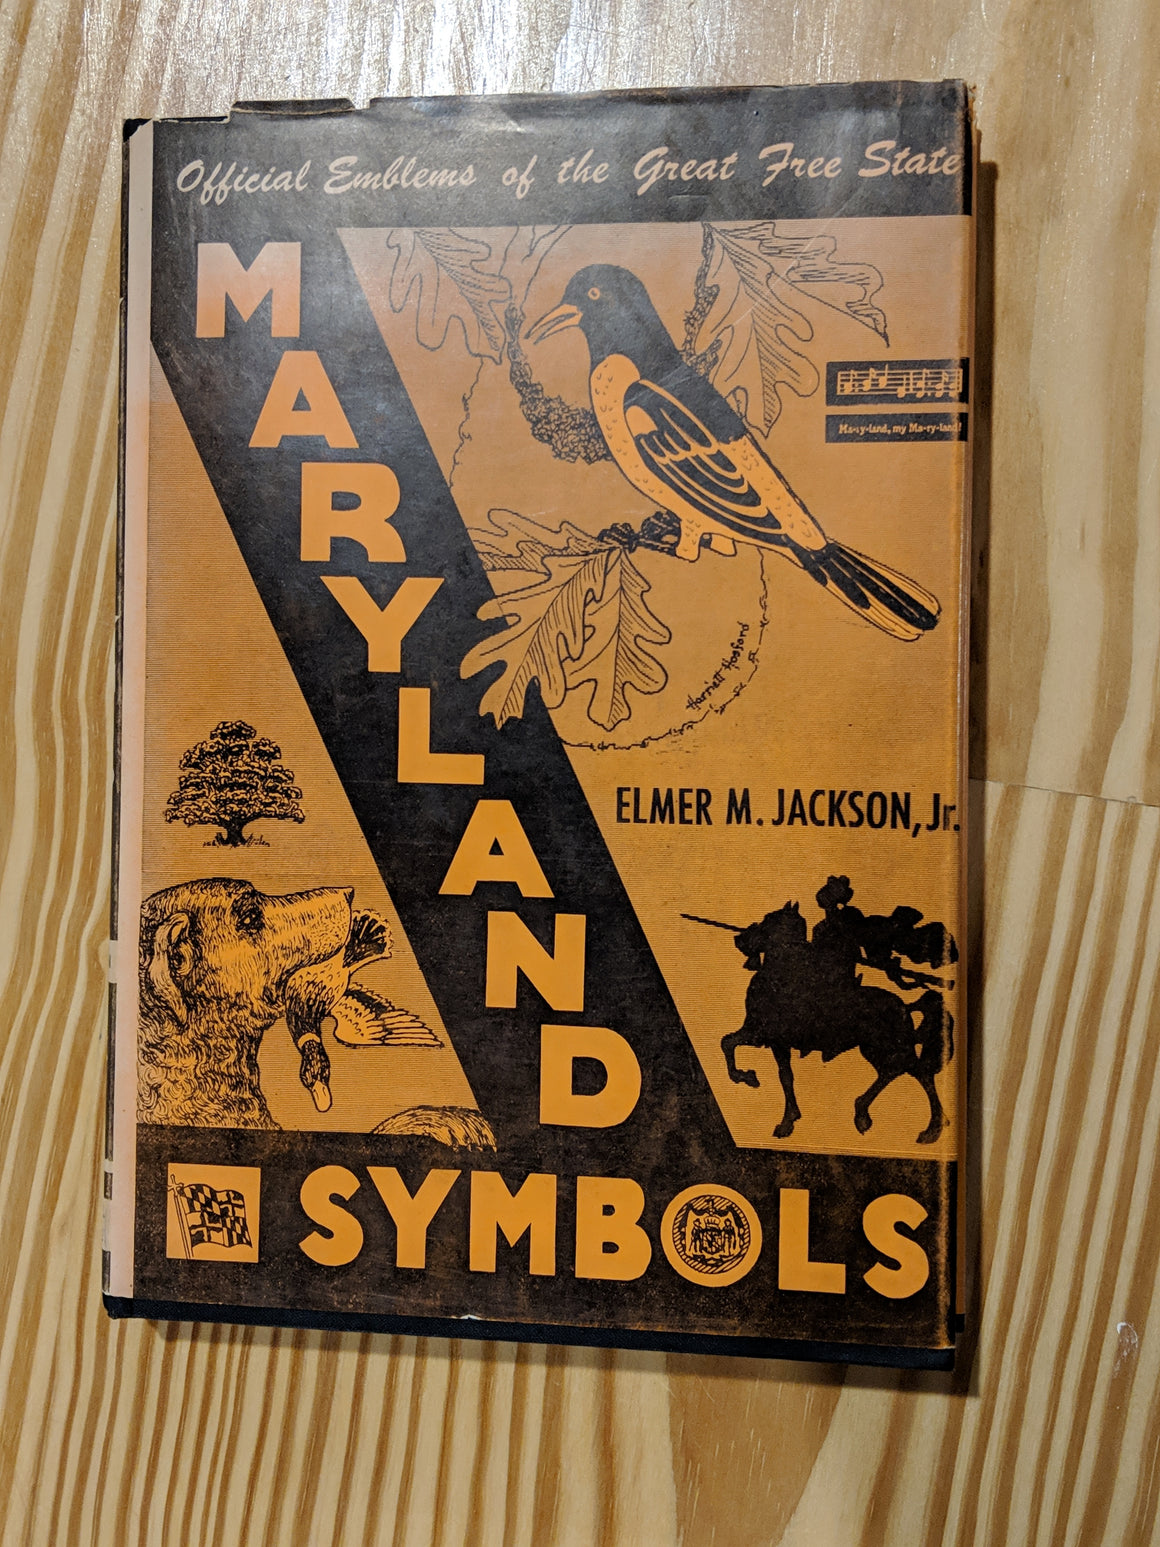 Book - Maryland Symbols